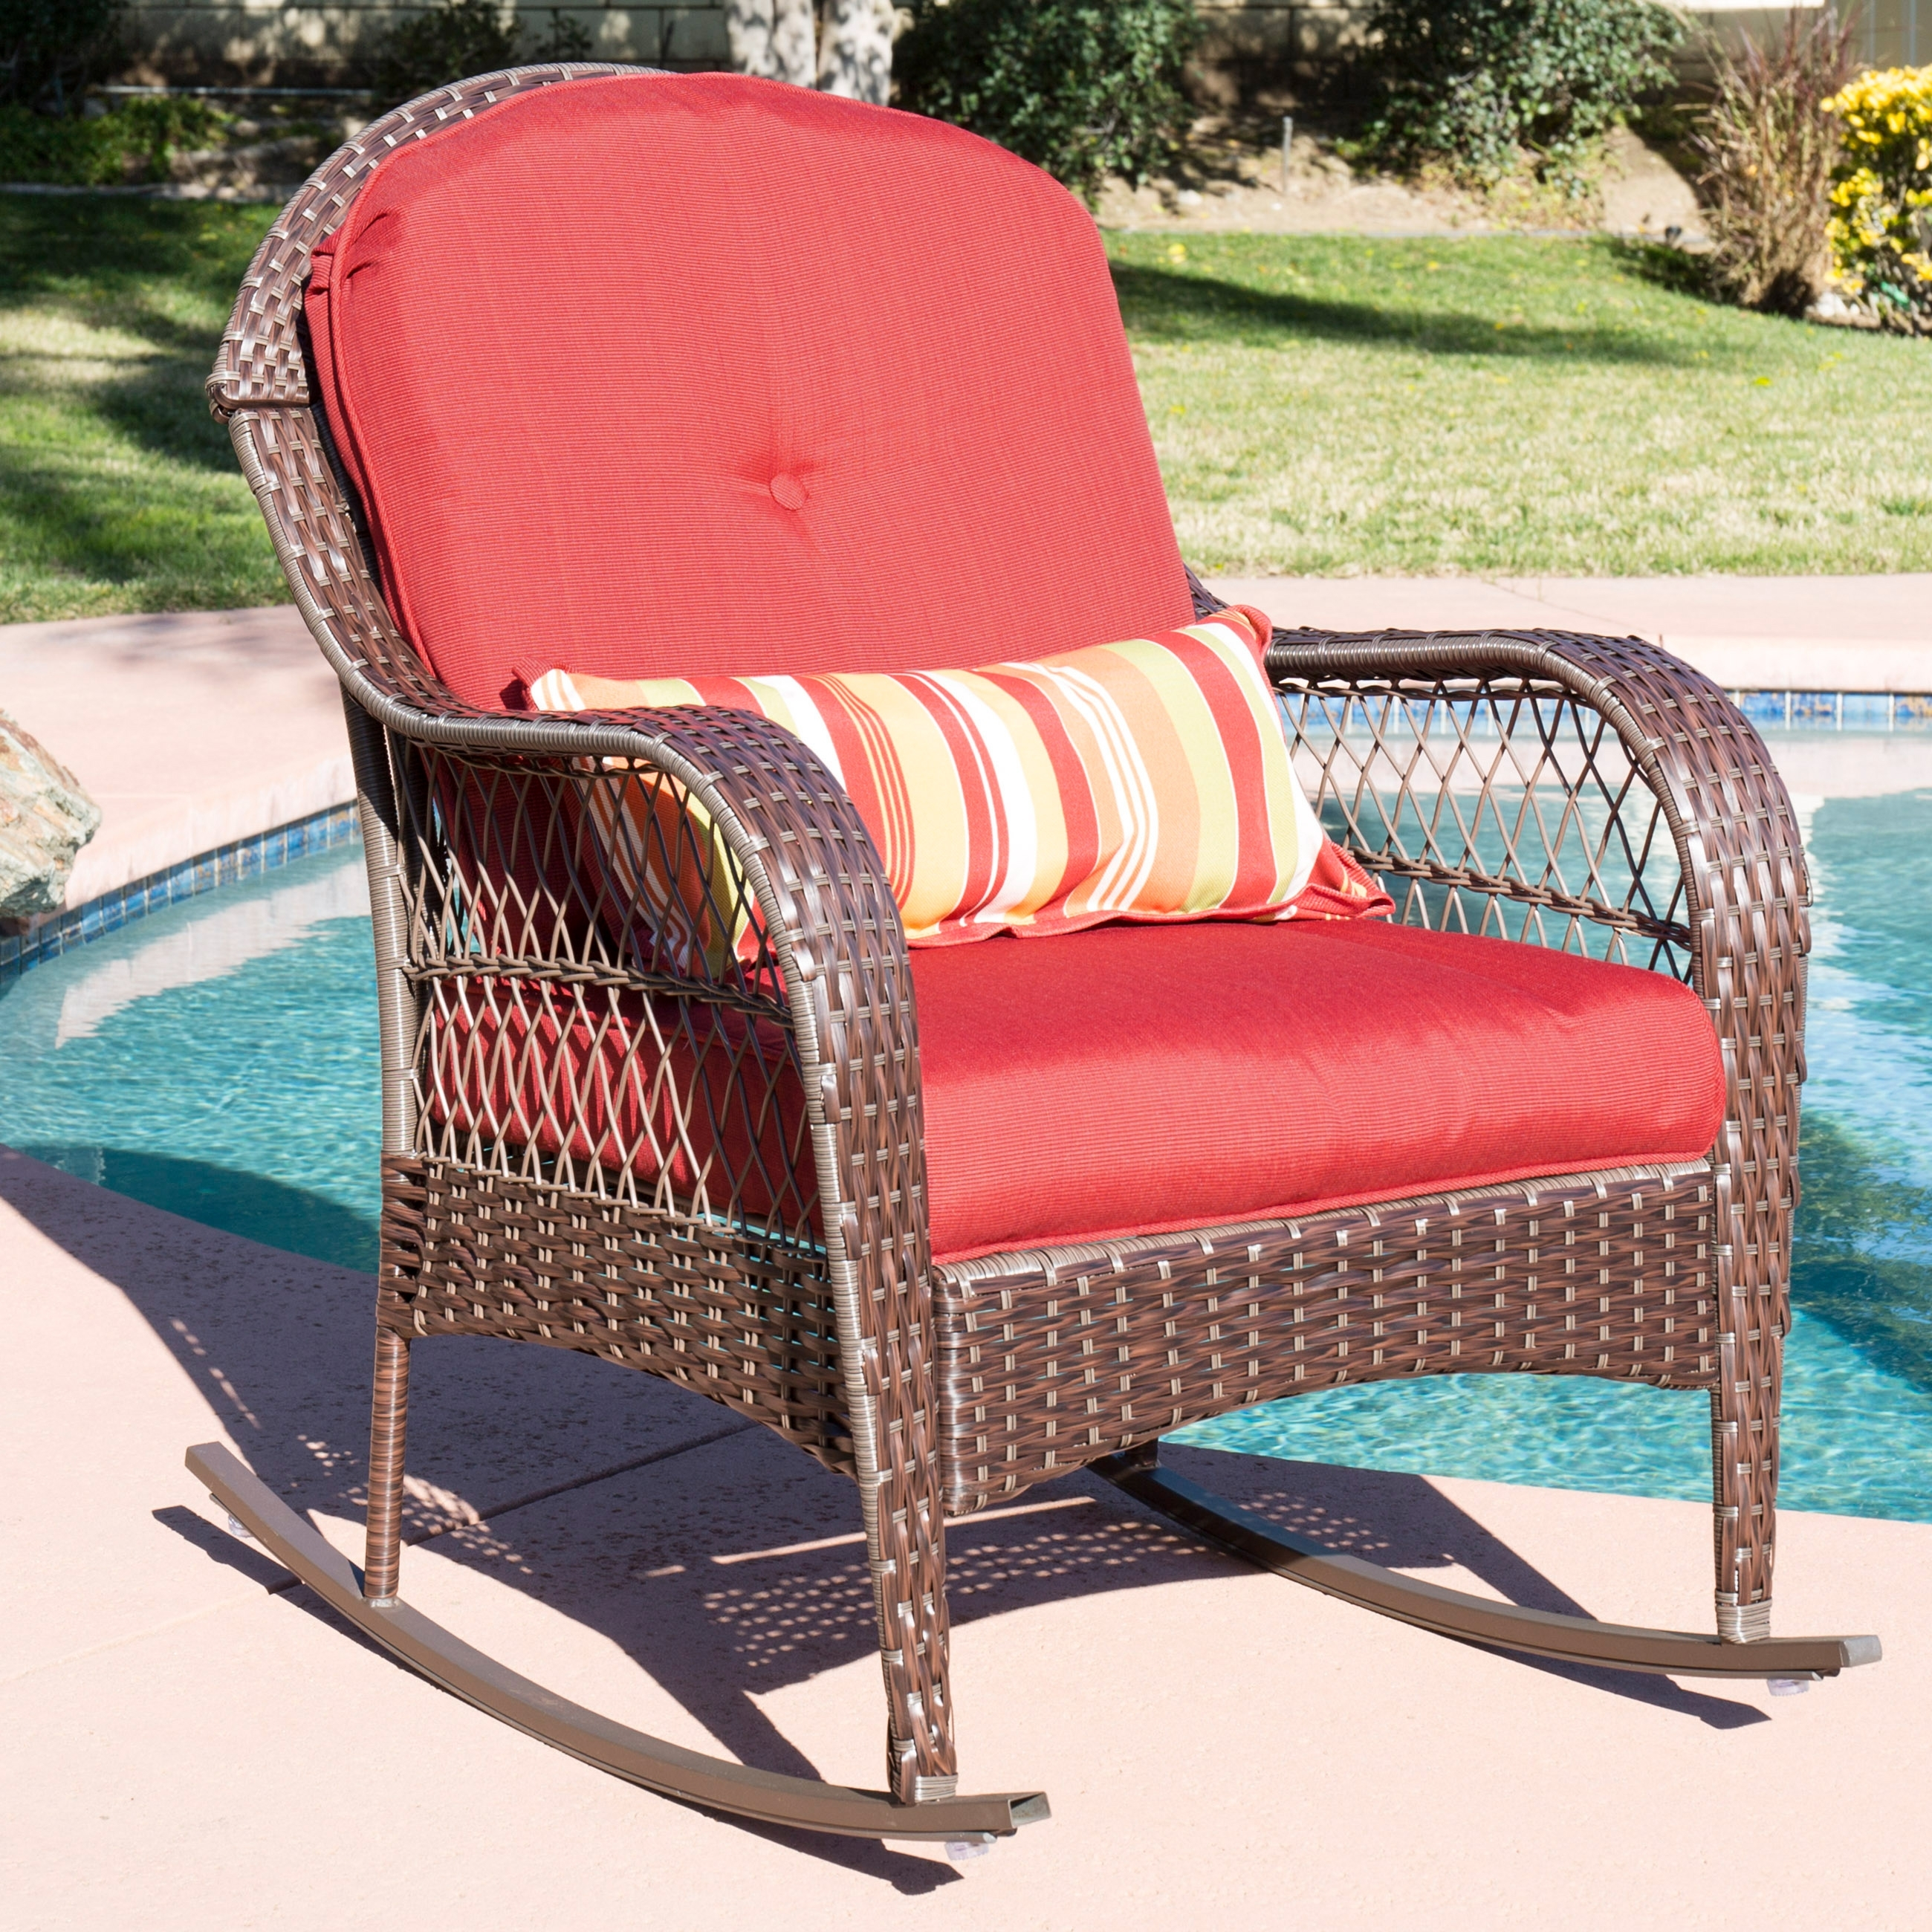 Best And Newest Best Choice Products Wicker Rocking Chair Patio Porch Deck Furniture Intended For Wicker Rocking Chairs With Cushions (View 2 of 15)